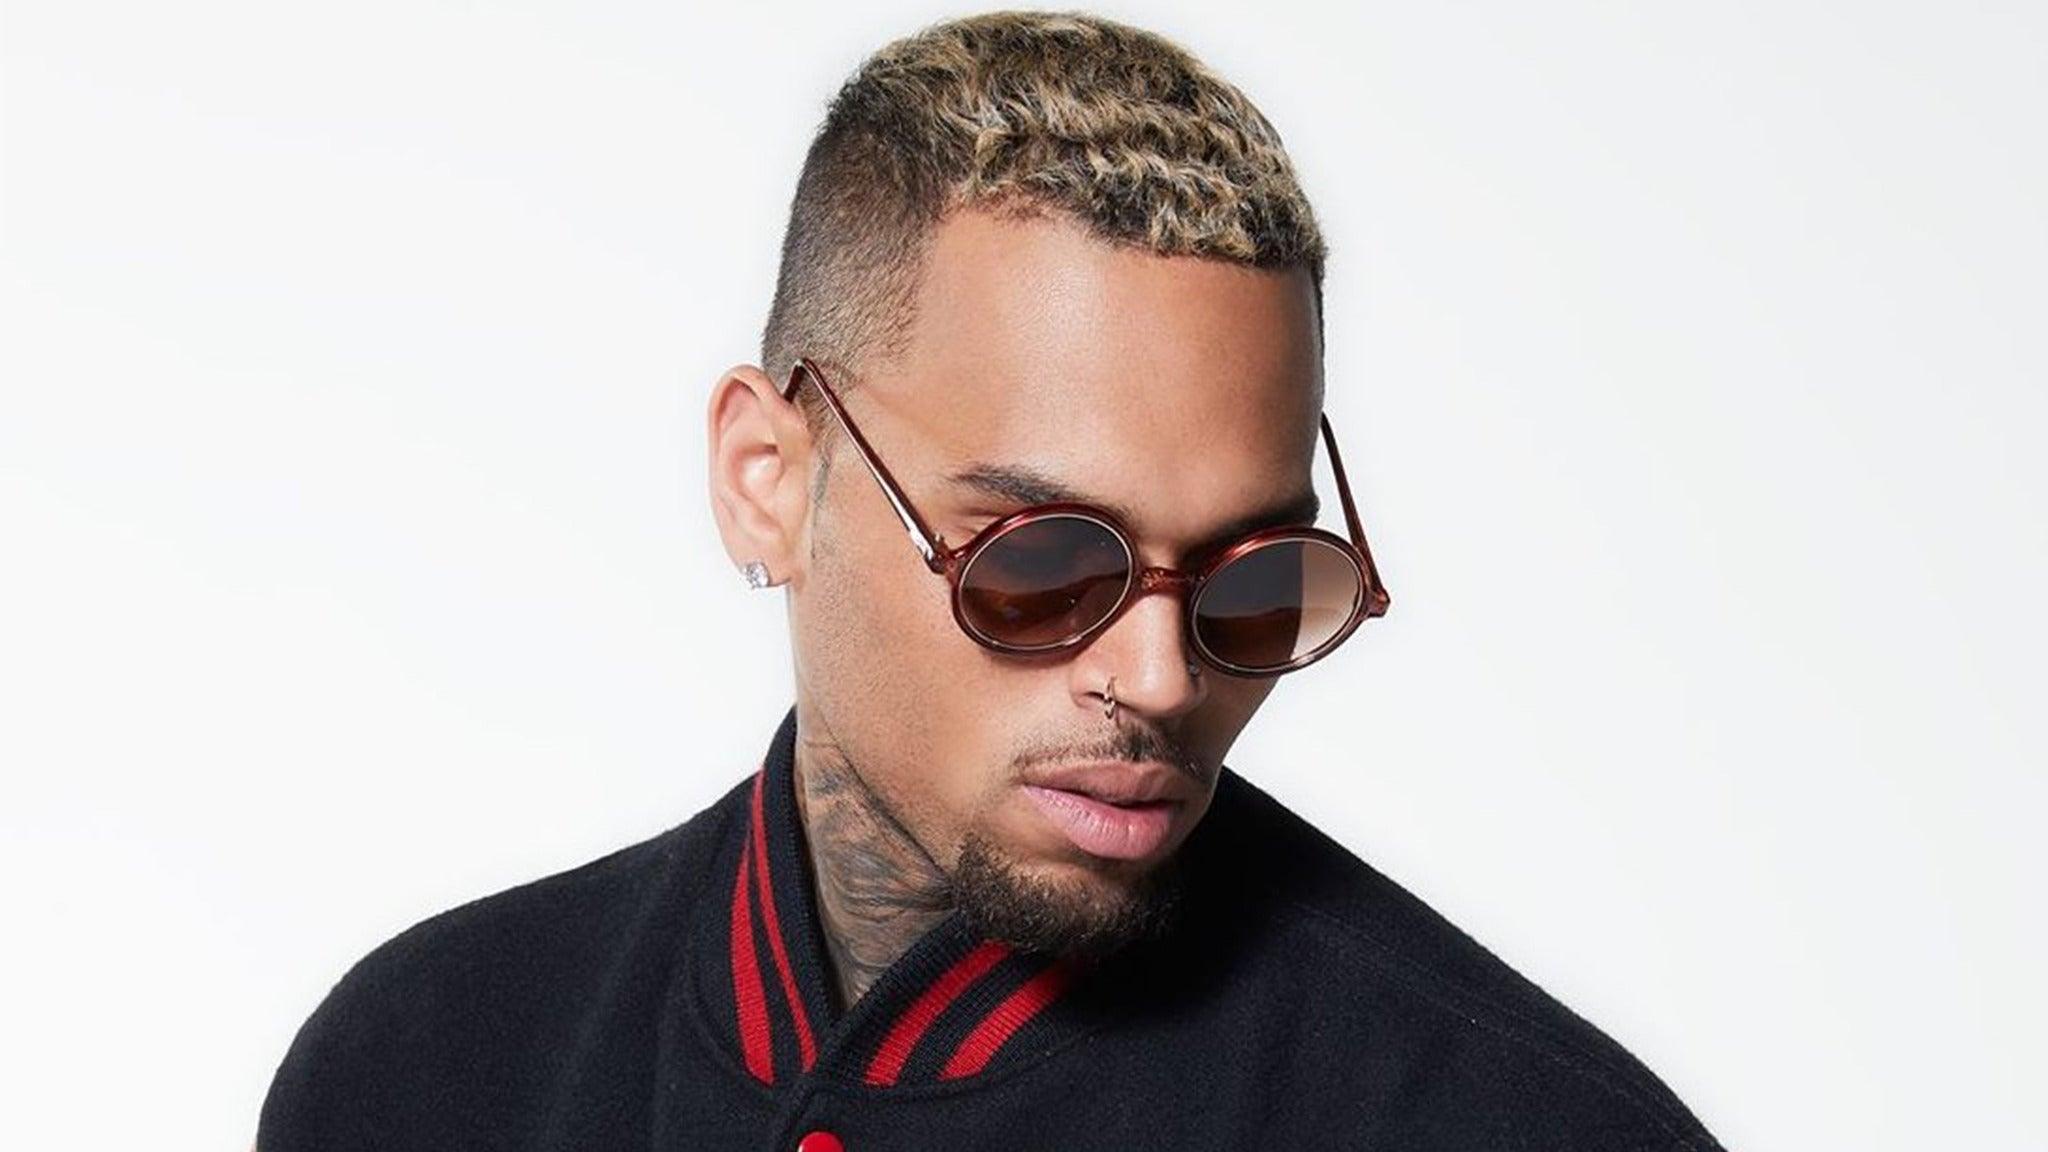 Chris Brown - Indigoat Tour 2019 at Vivint Smart Home Arena